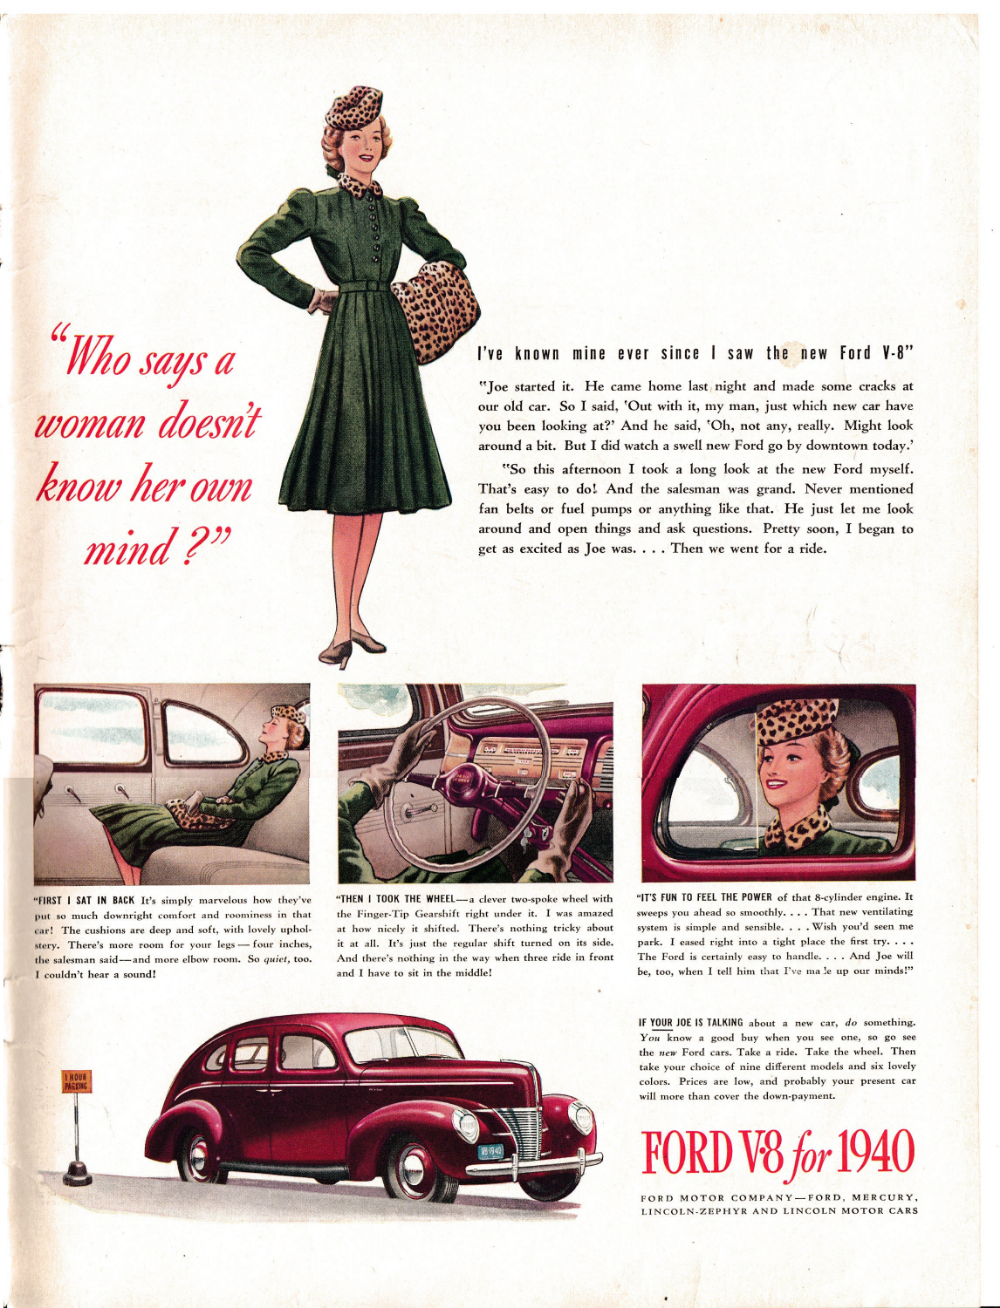 1940 Ford V 8 4 Door A Woman S Point Of View Original Etsy 1940 Ford Ford Ford Motor Company